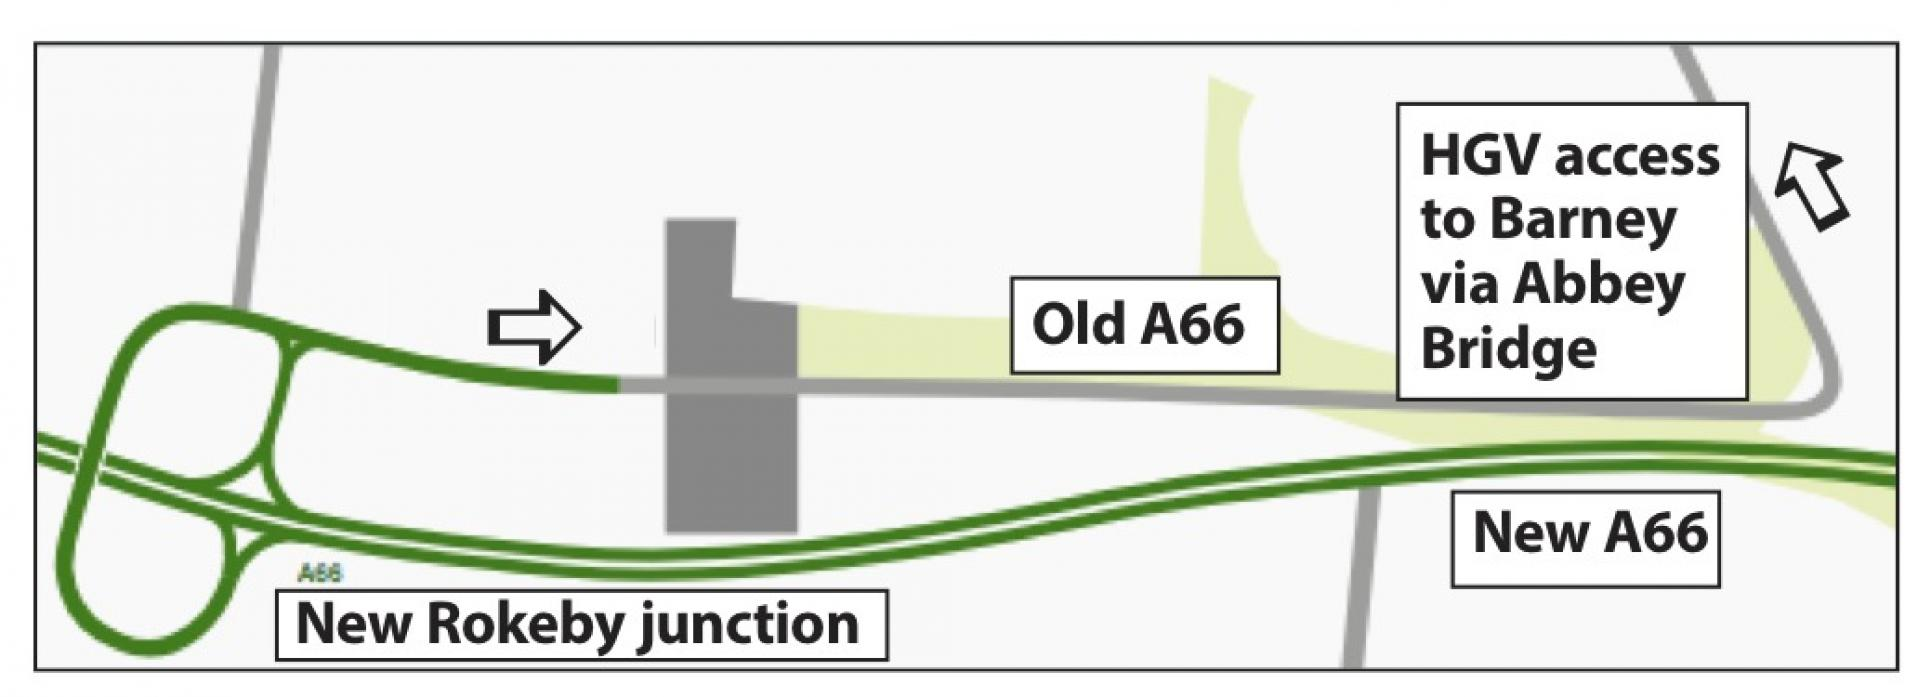 HGV ACCESS: The proposed route of the A66 at Rokeby. This route to Barnard Castle would be for HGVs. Cars would go via Cross Lanes where a new junction is planned